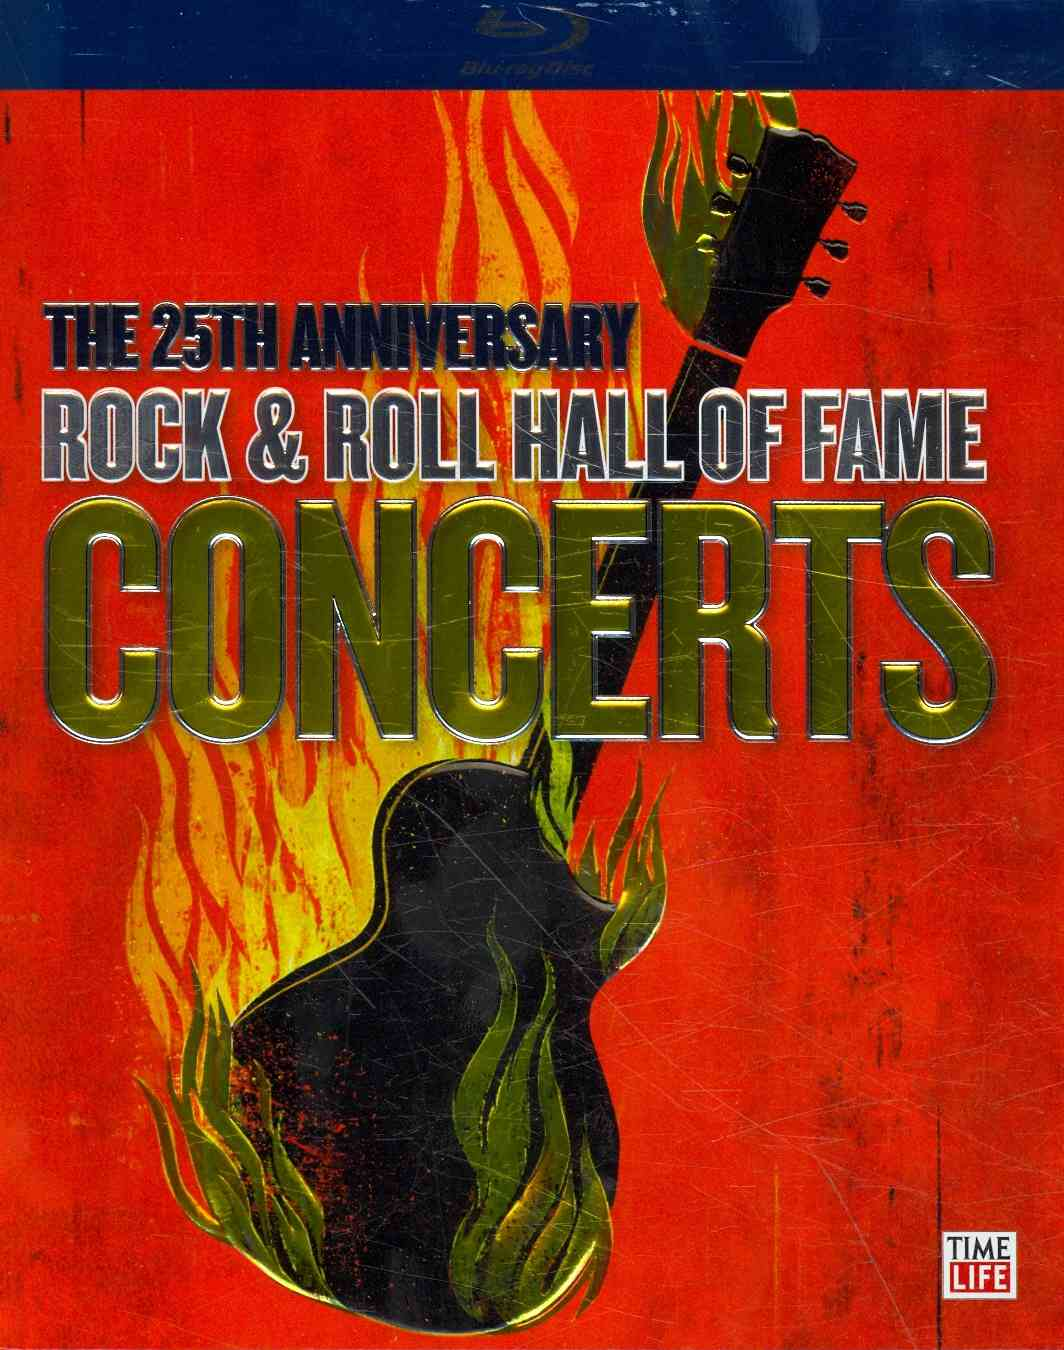 25TH ANNIVERSARY ROCK & ROLL HALL OF (Blu-Ray)